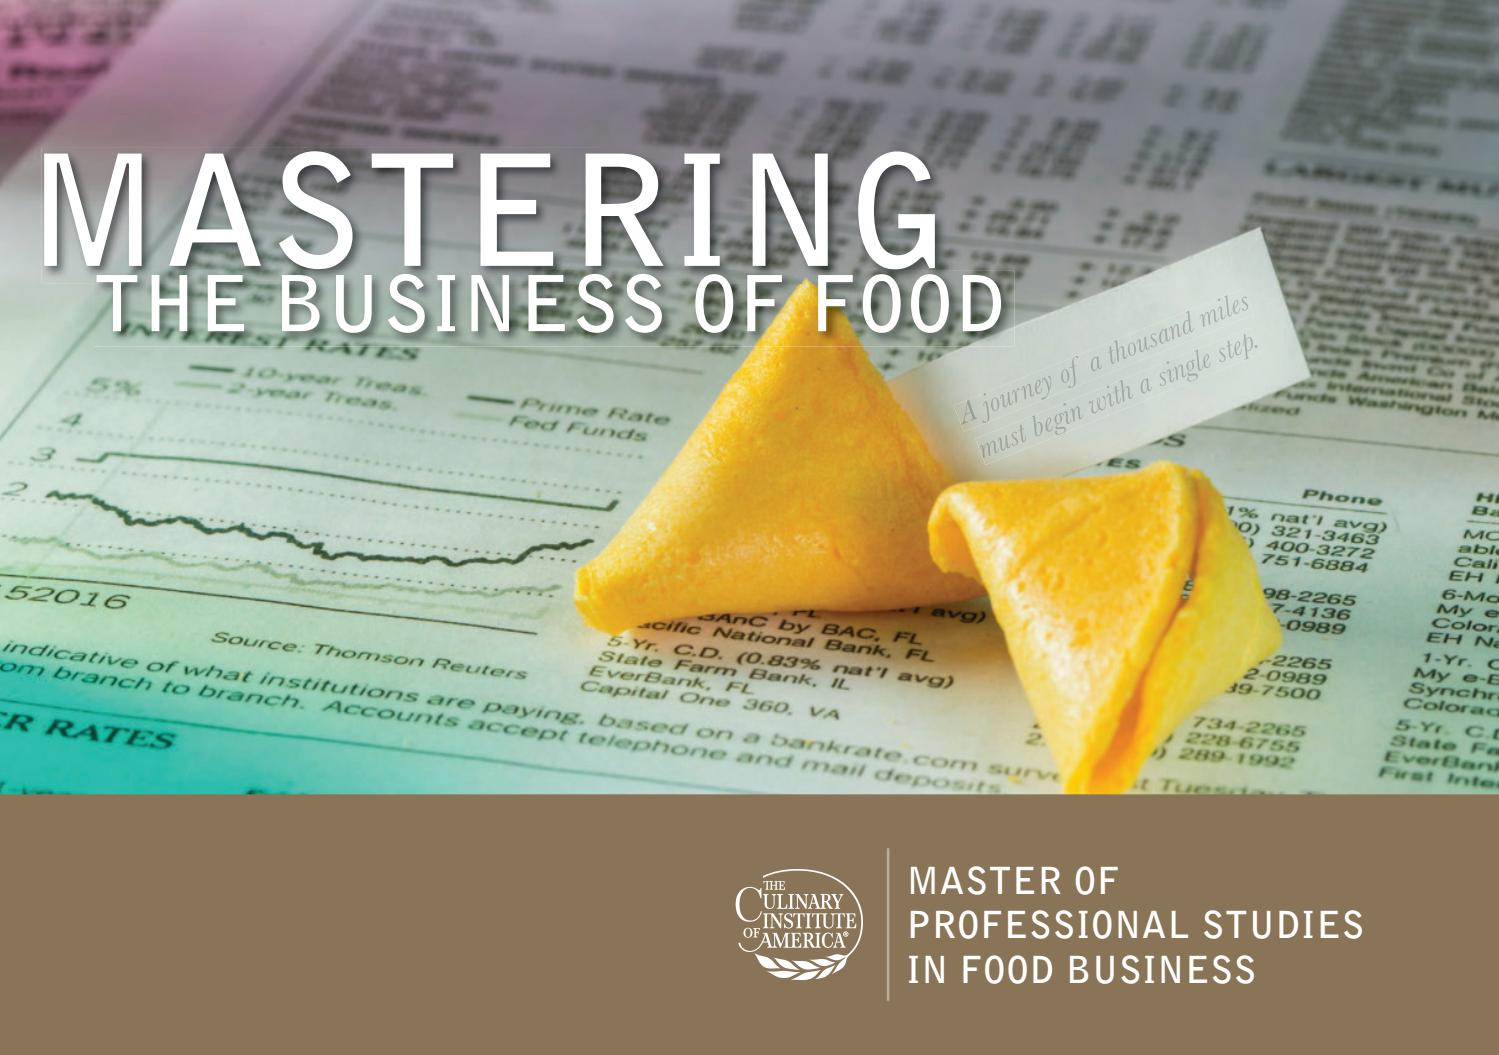 Master's in Professional Studies in Food Business by The Culinary